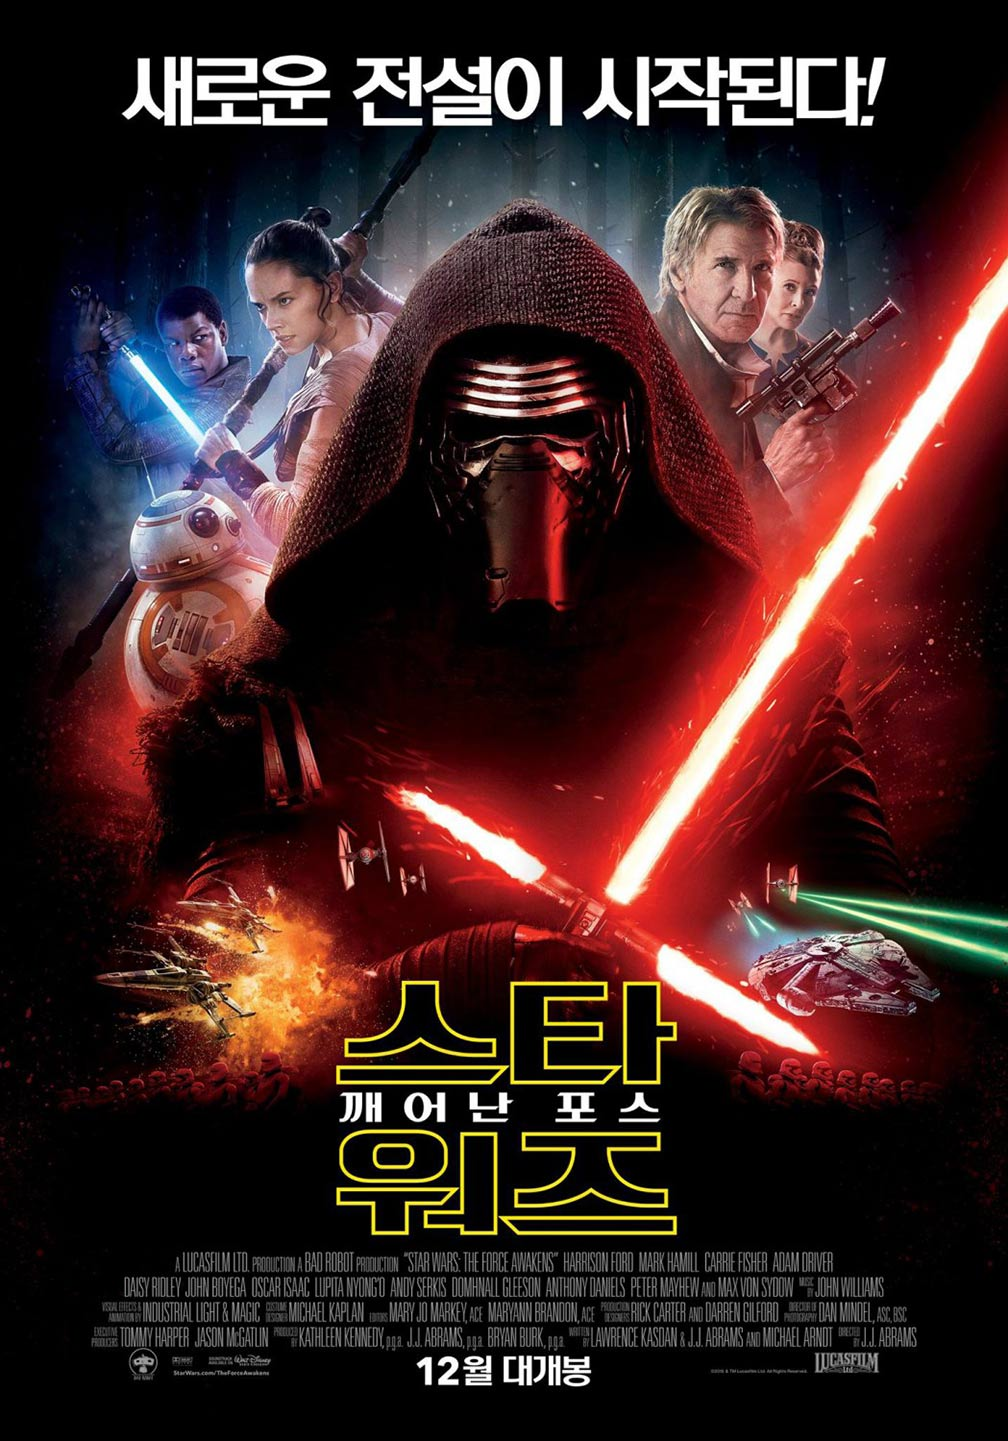 star wars episode vii the force awakens 2015 poster 1 trailer addict. Black Bedroom Furniture Sets. Home Design Ideas